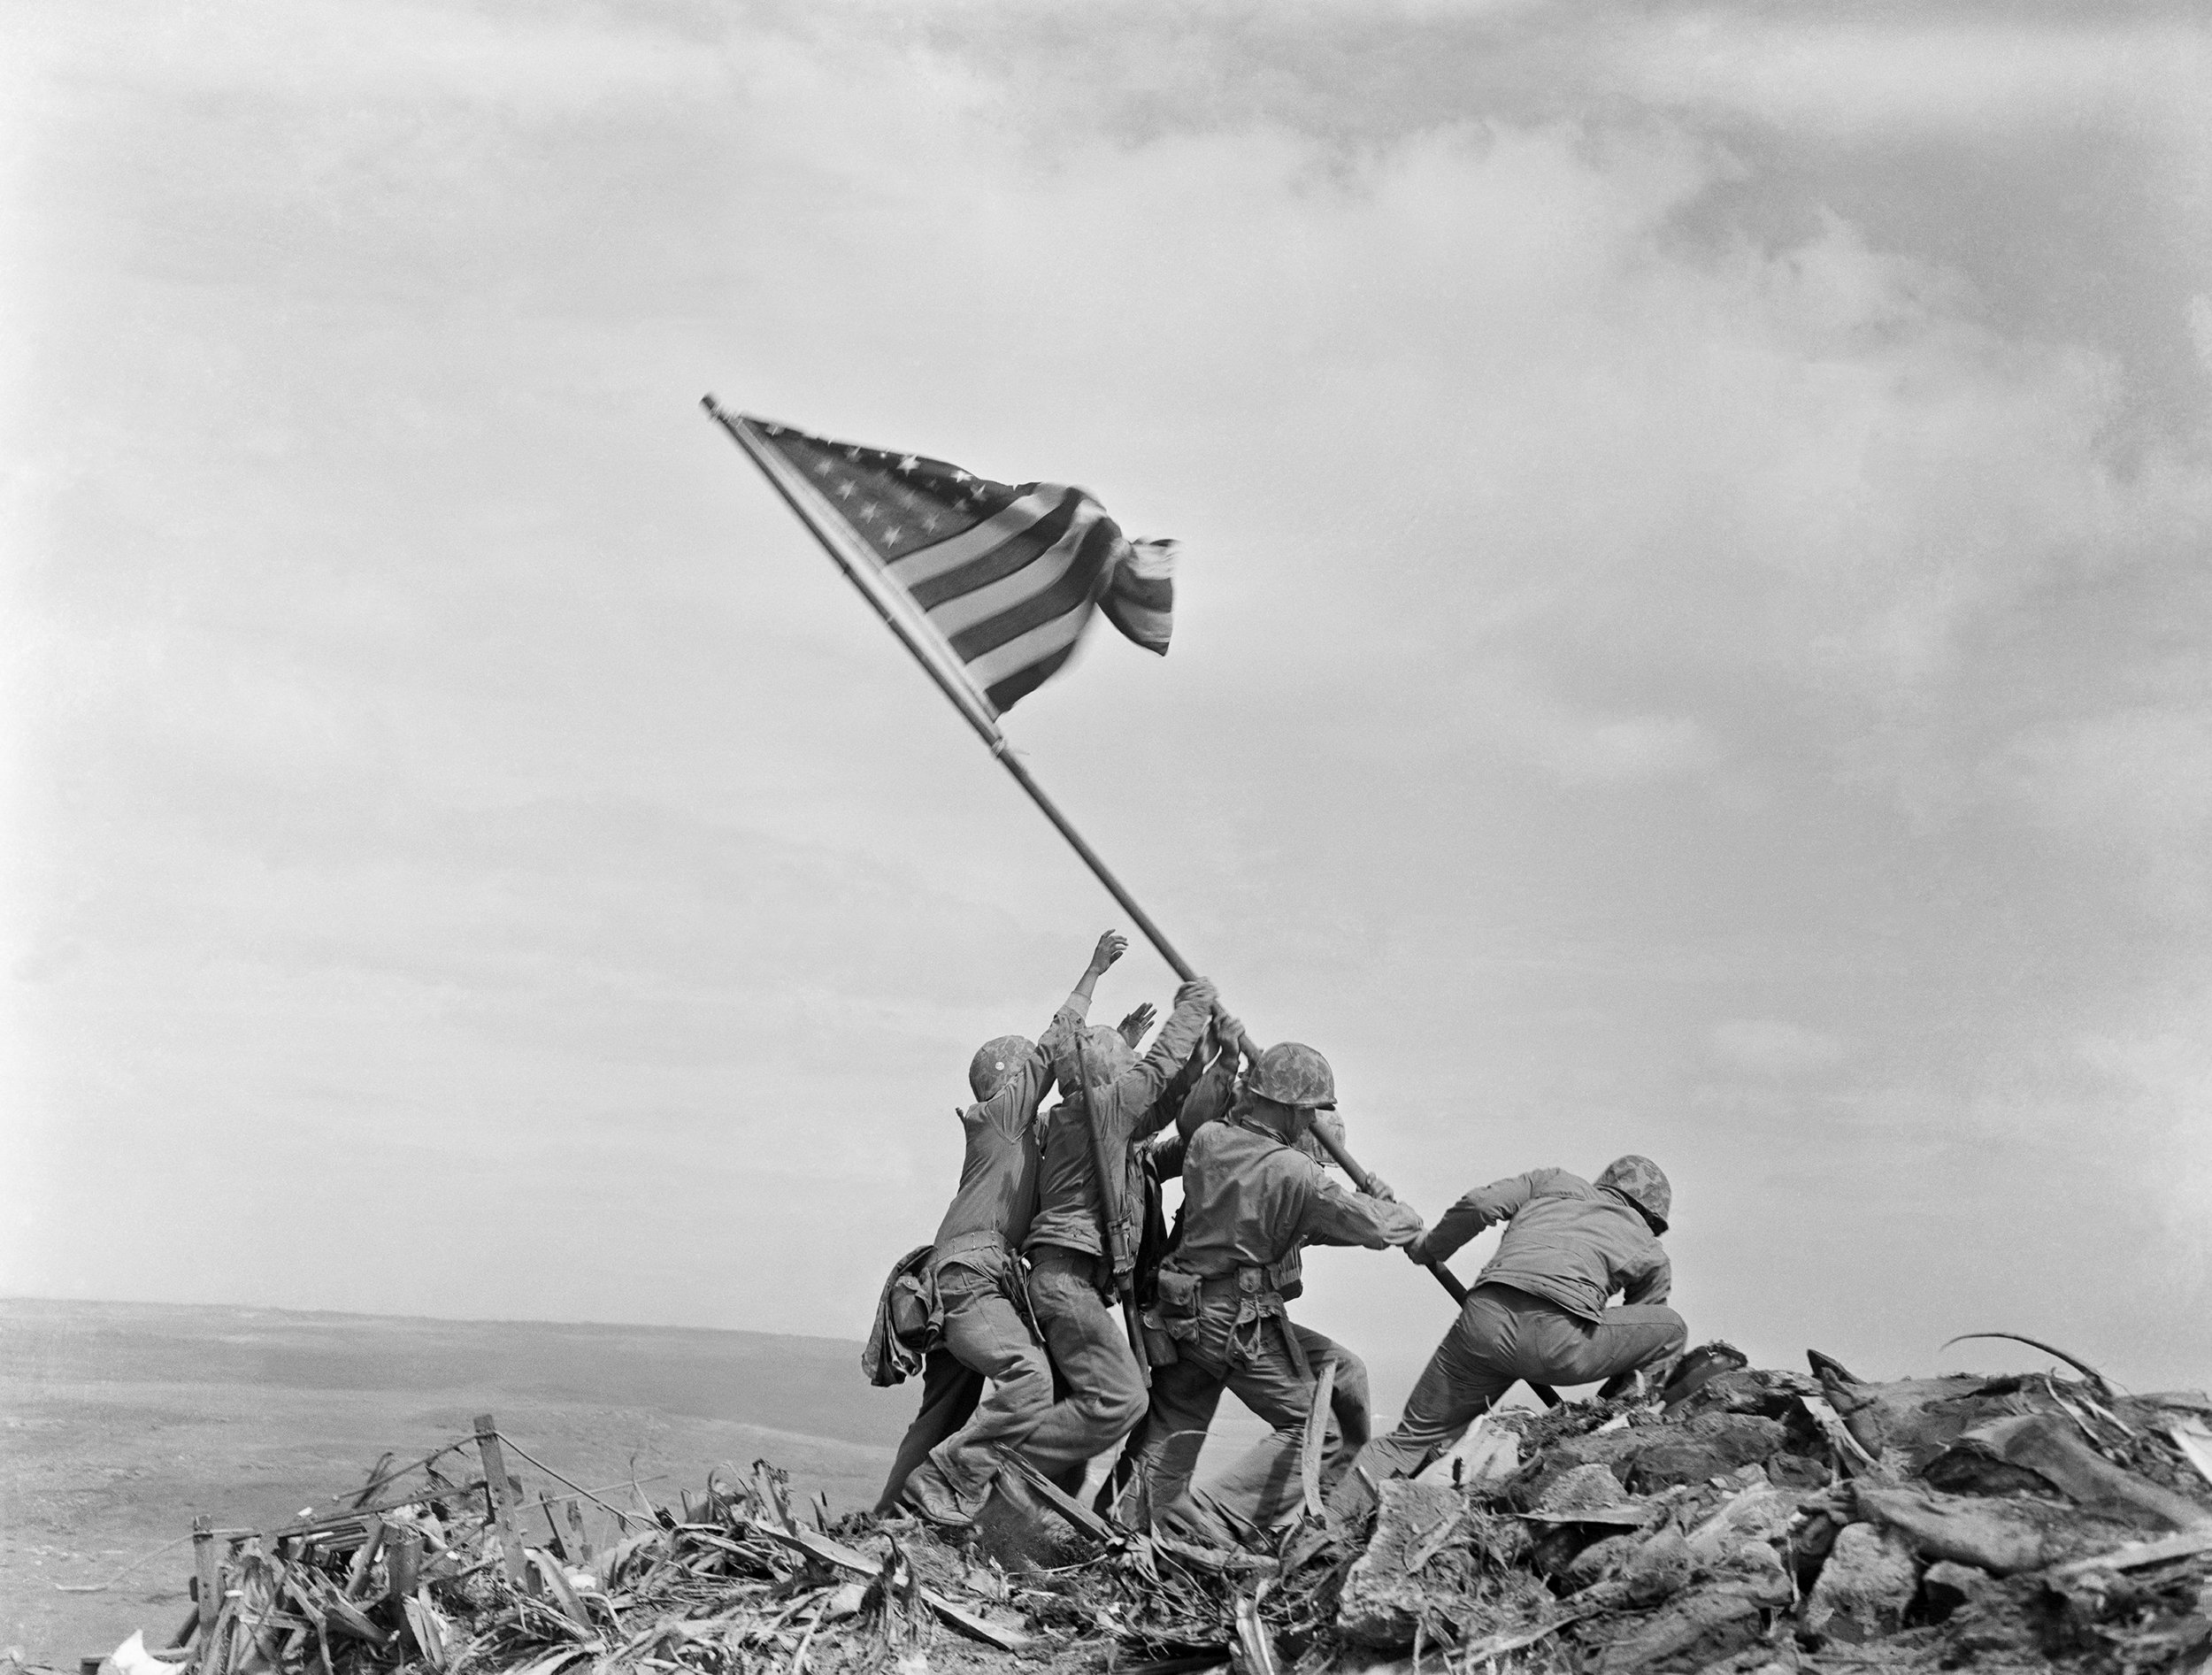 Raising_the_Flag_on_Iwo_Jima,_larger_-_edit1.jpg